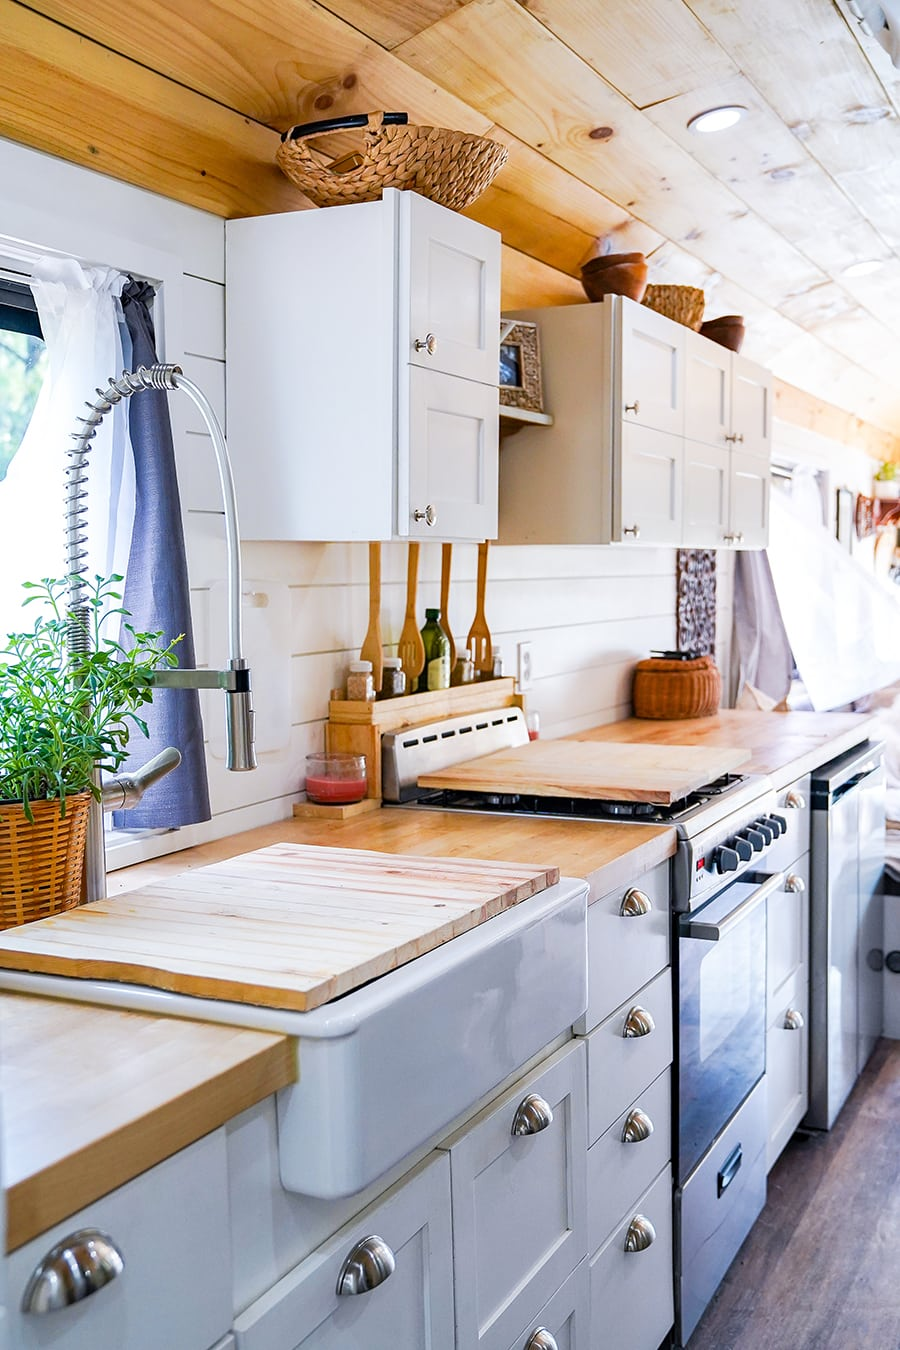 amazing tiny kitchen design inside converted school bus @happyhomebodies